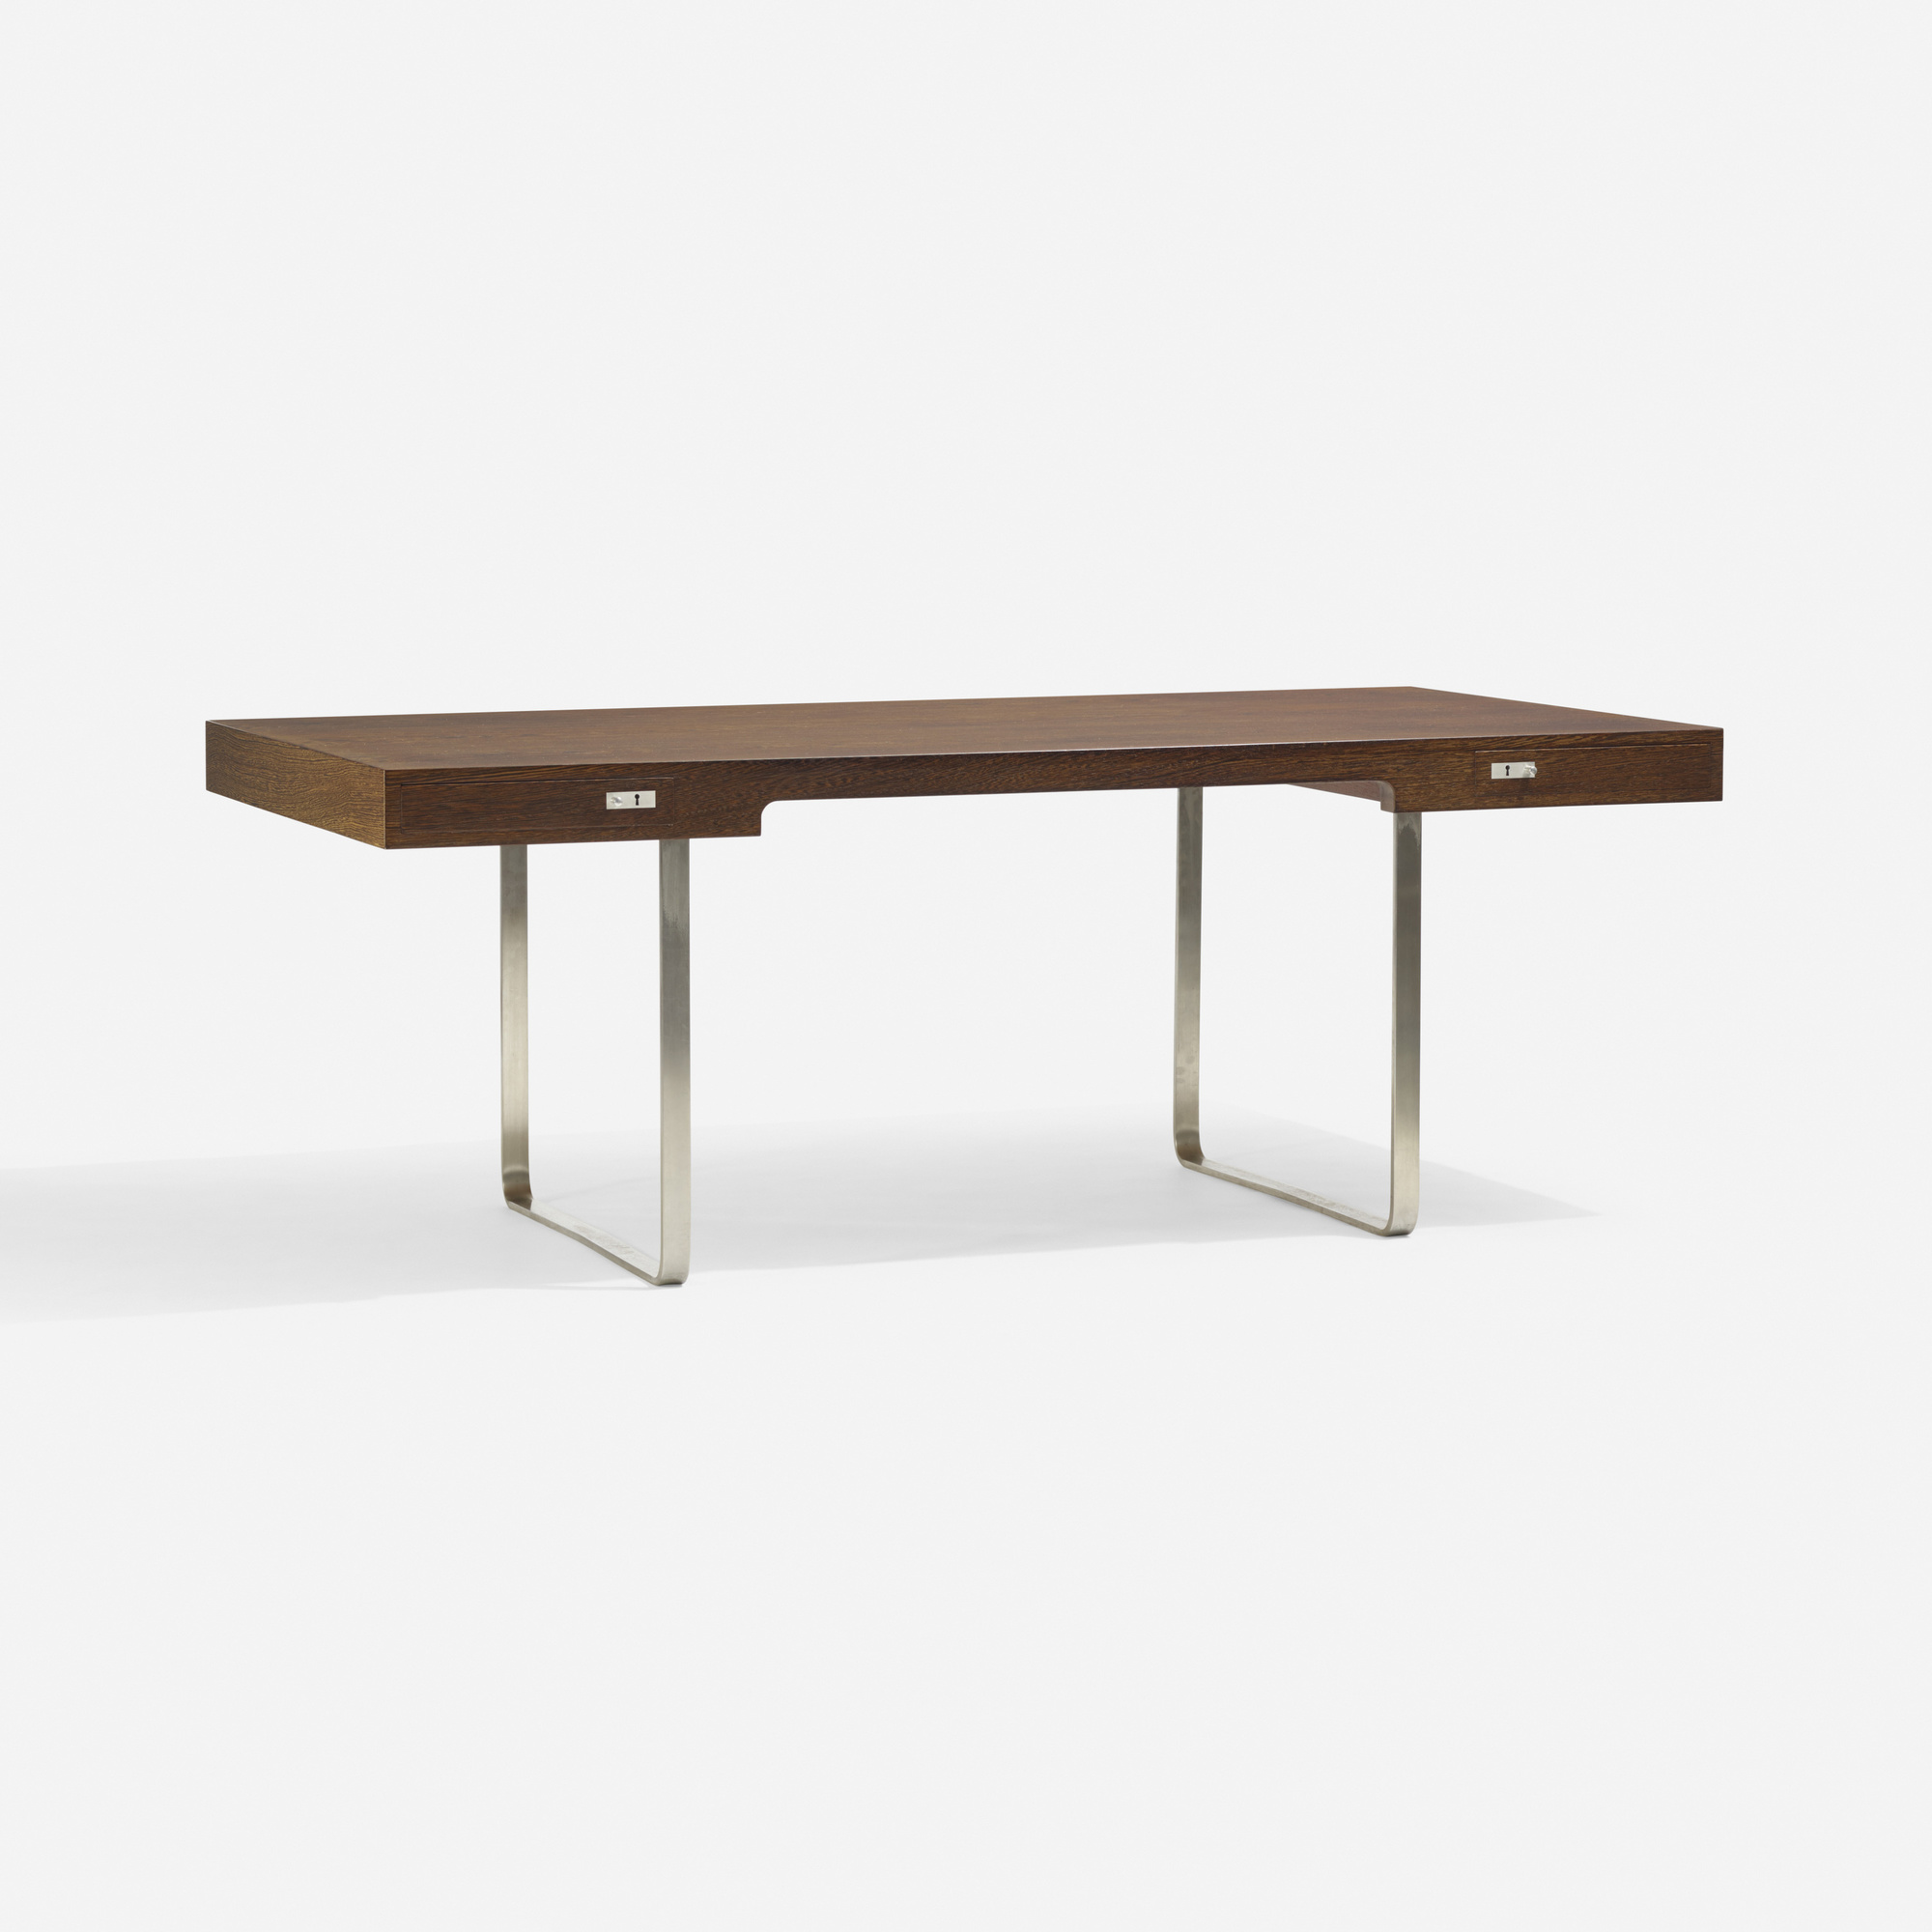 177 Hans J Wegner Desk Model Jh 810 1 Of 3